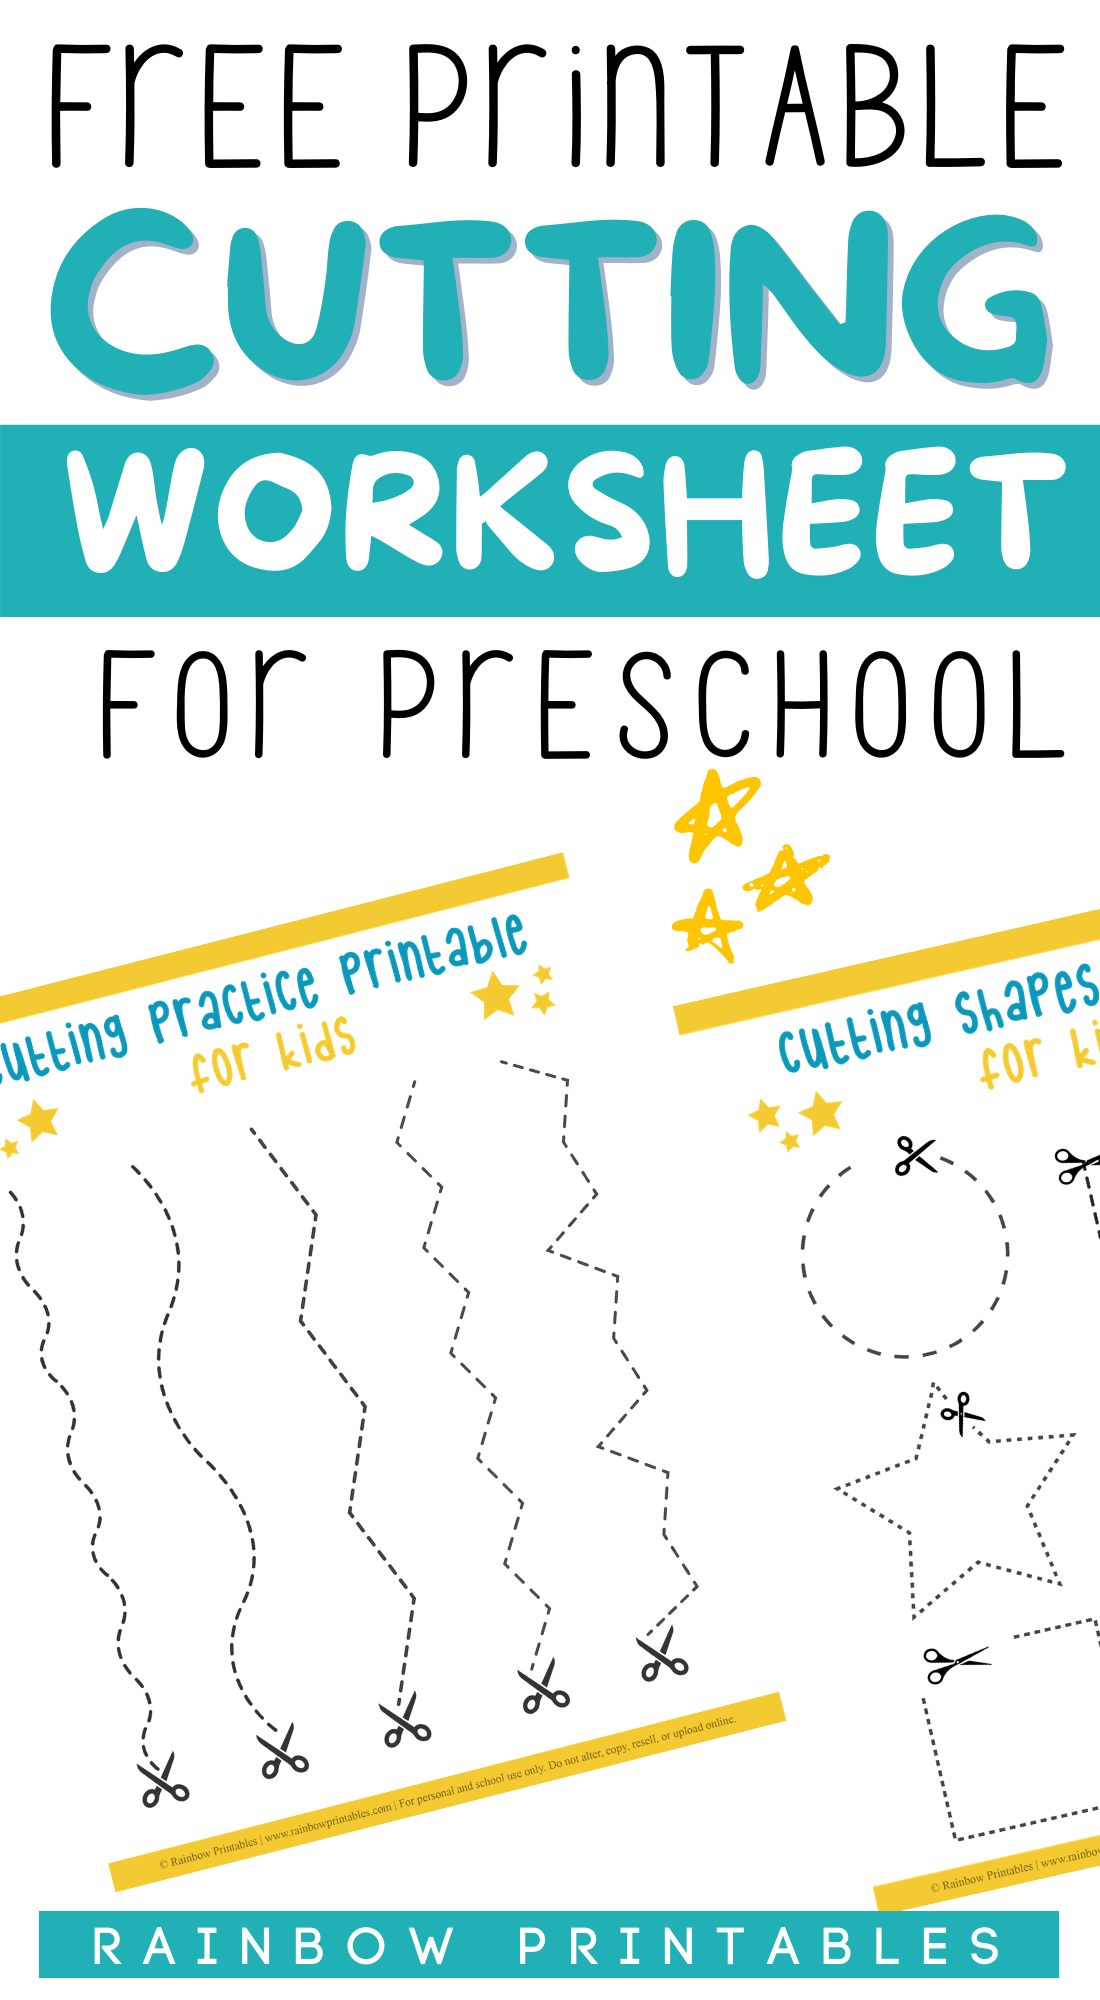 Paper Cutting Lines & Shapes – Worksheets For Preschool – Fine Motor Practice With Scissors